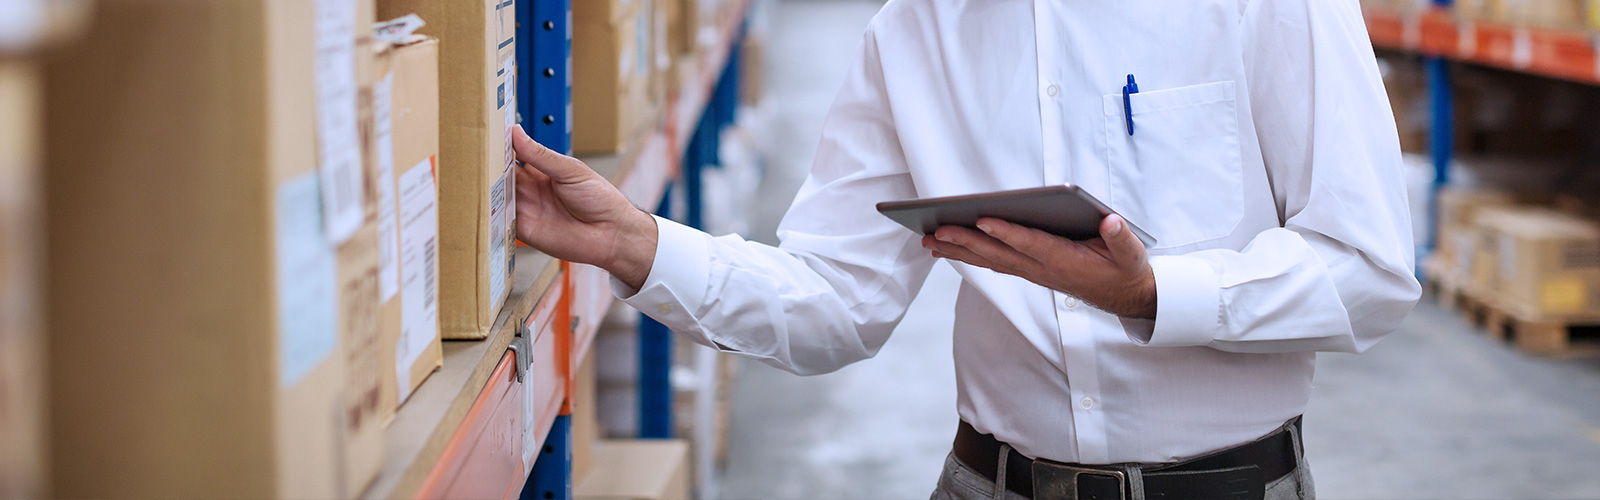 A professional in a white shirt holding a tablet and checking up a package in a warehouse.